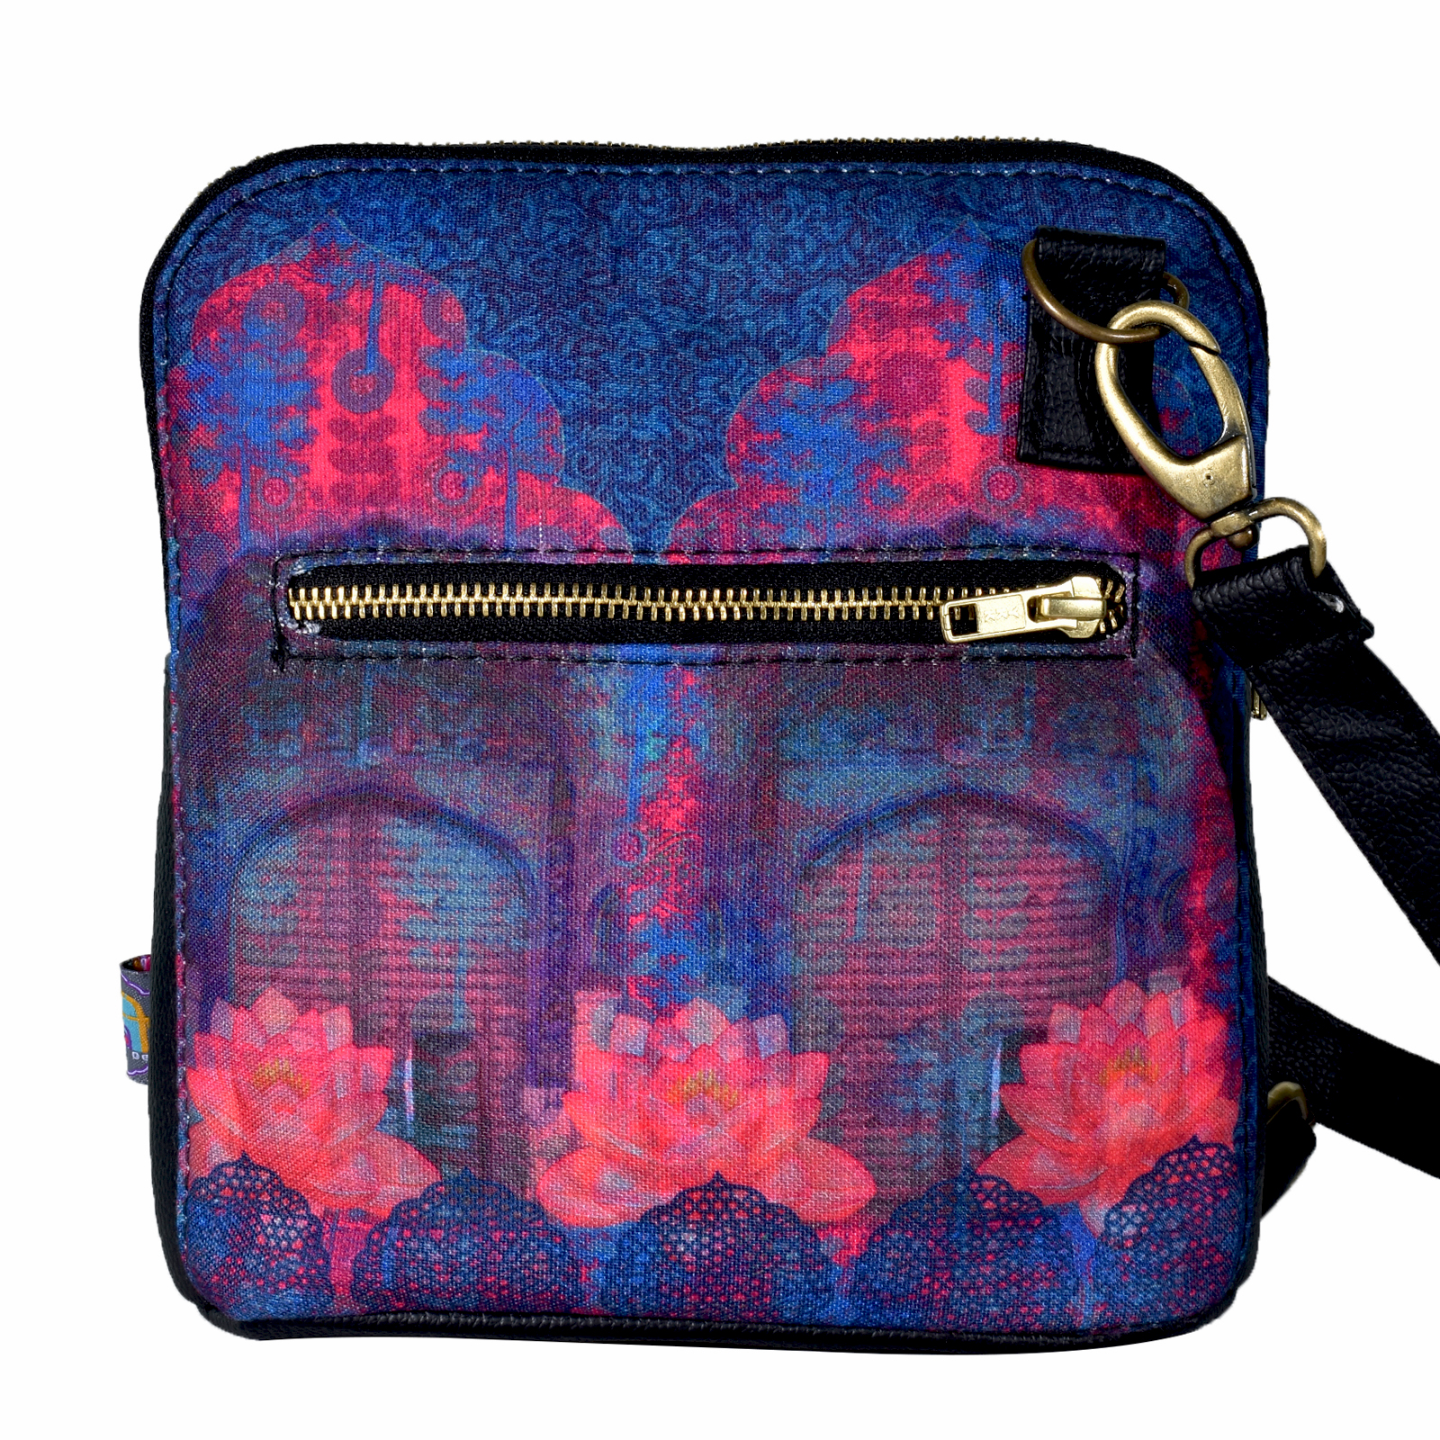 Cool Blue Rajasthani Crossbody Bag For Women And Girls